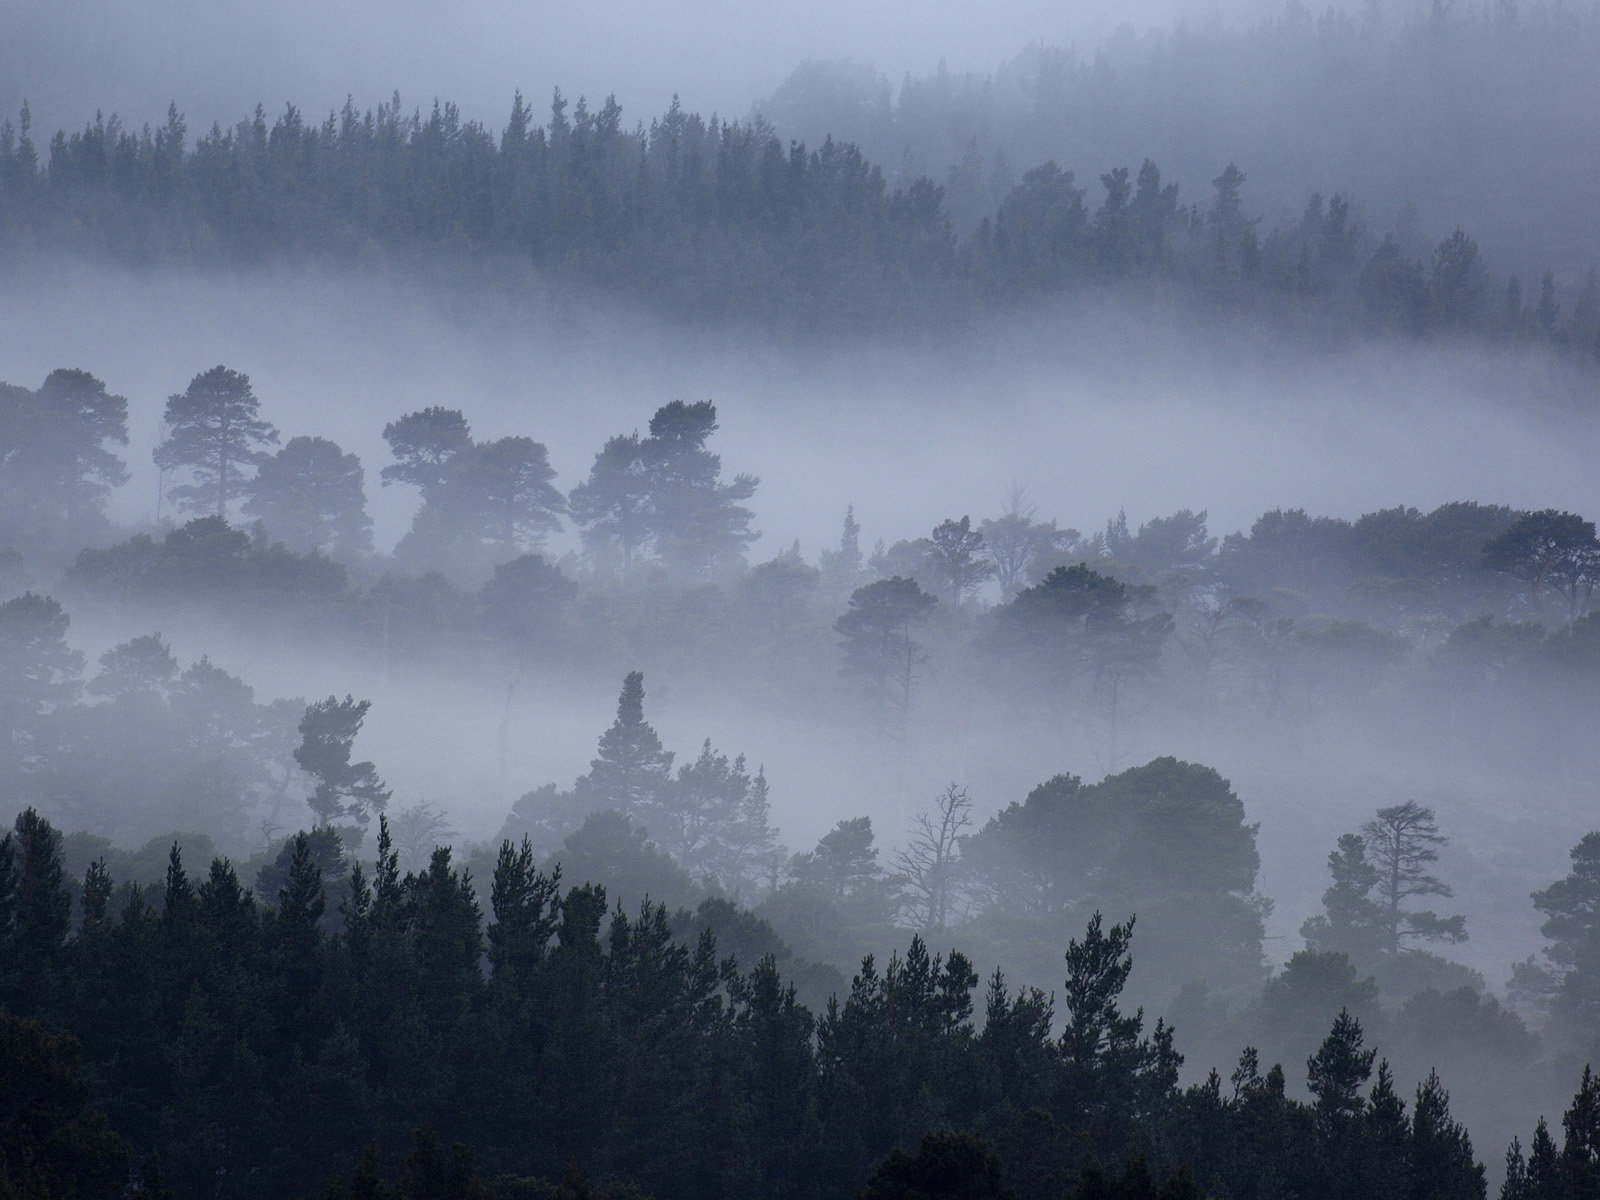 View of conifer forest shrouded in dawn mist, Rothiemurchus Forest, Cairngorms N.P., Highlands, Scotland, april